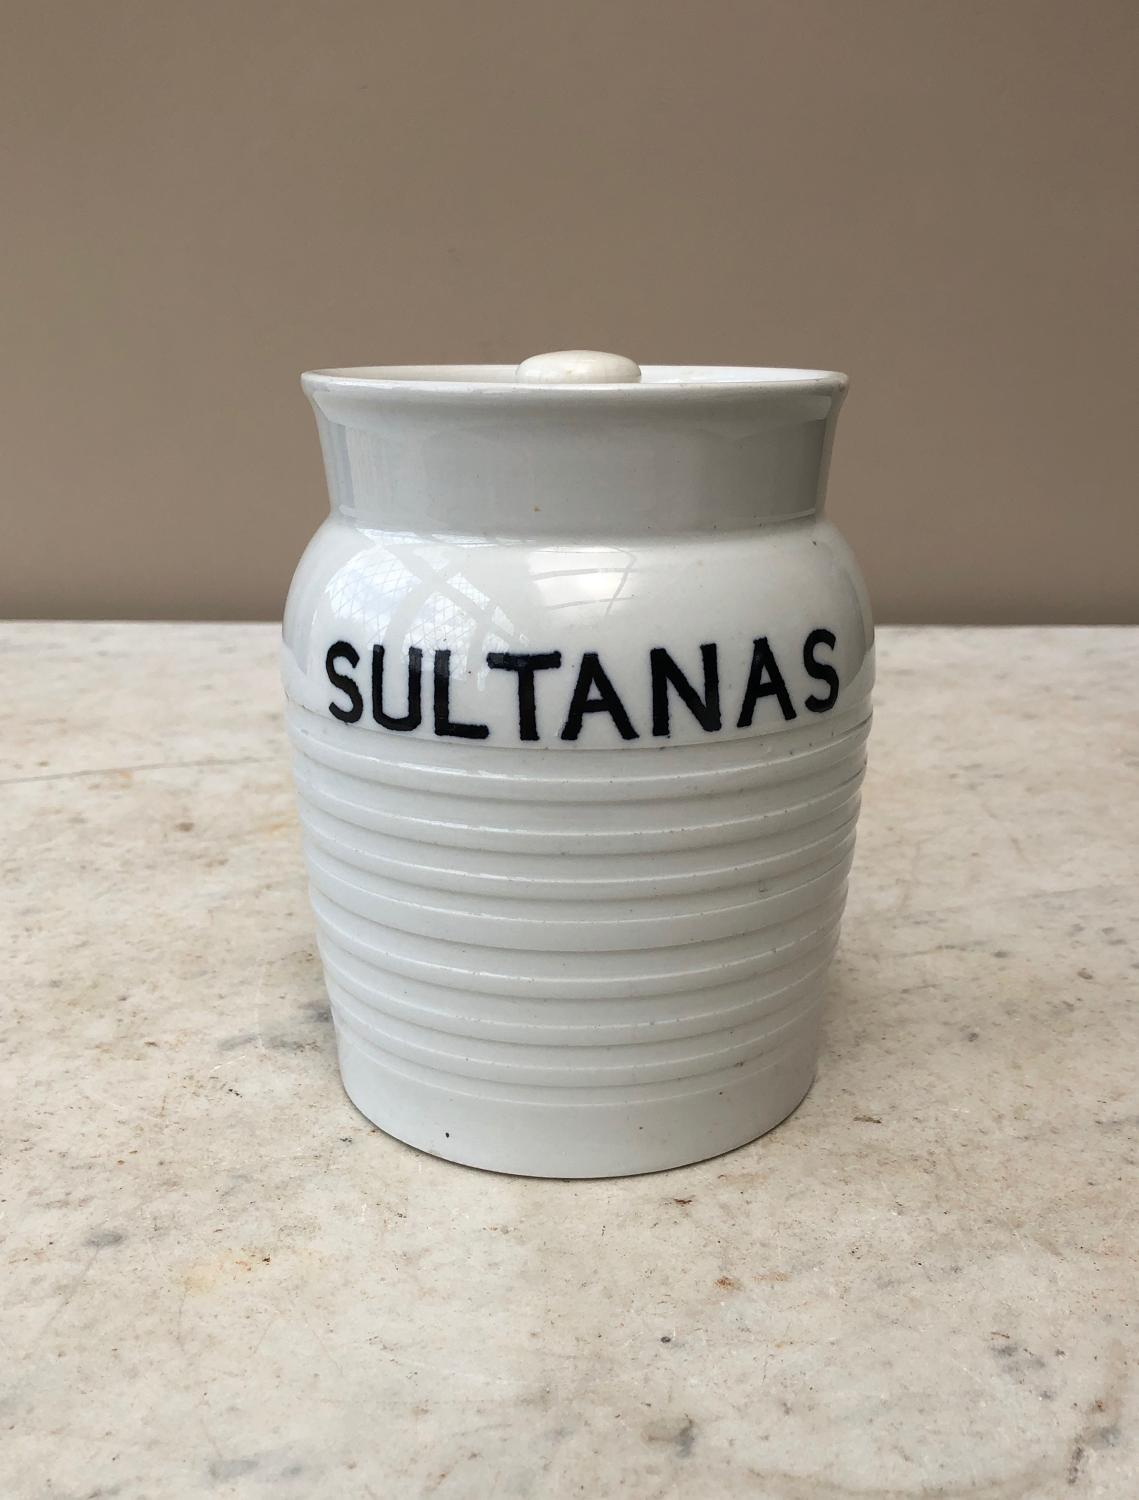 Edwardian White Banded Kitchen Storage Jar - Sultanas